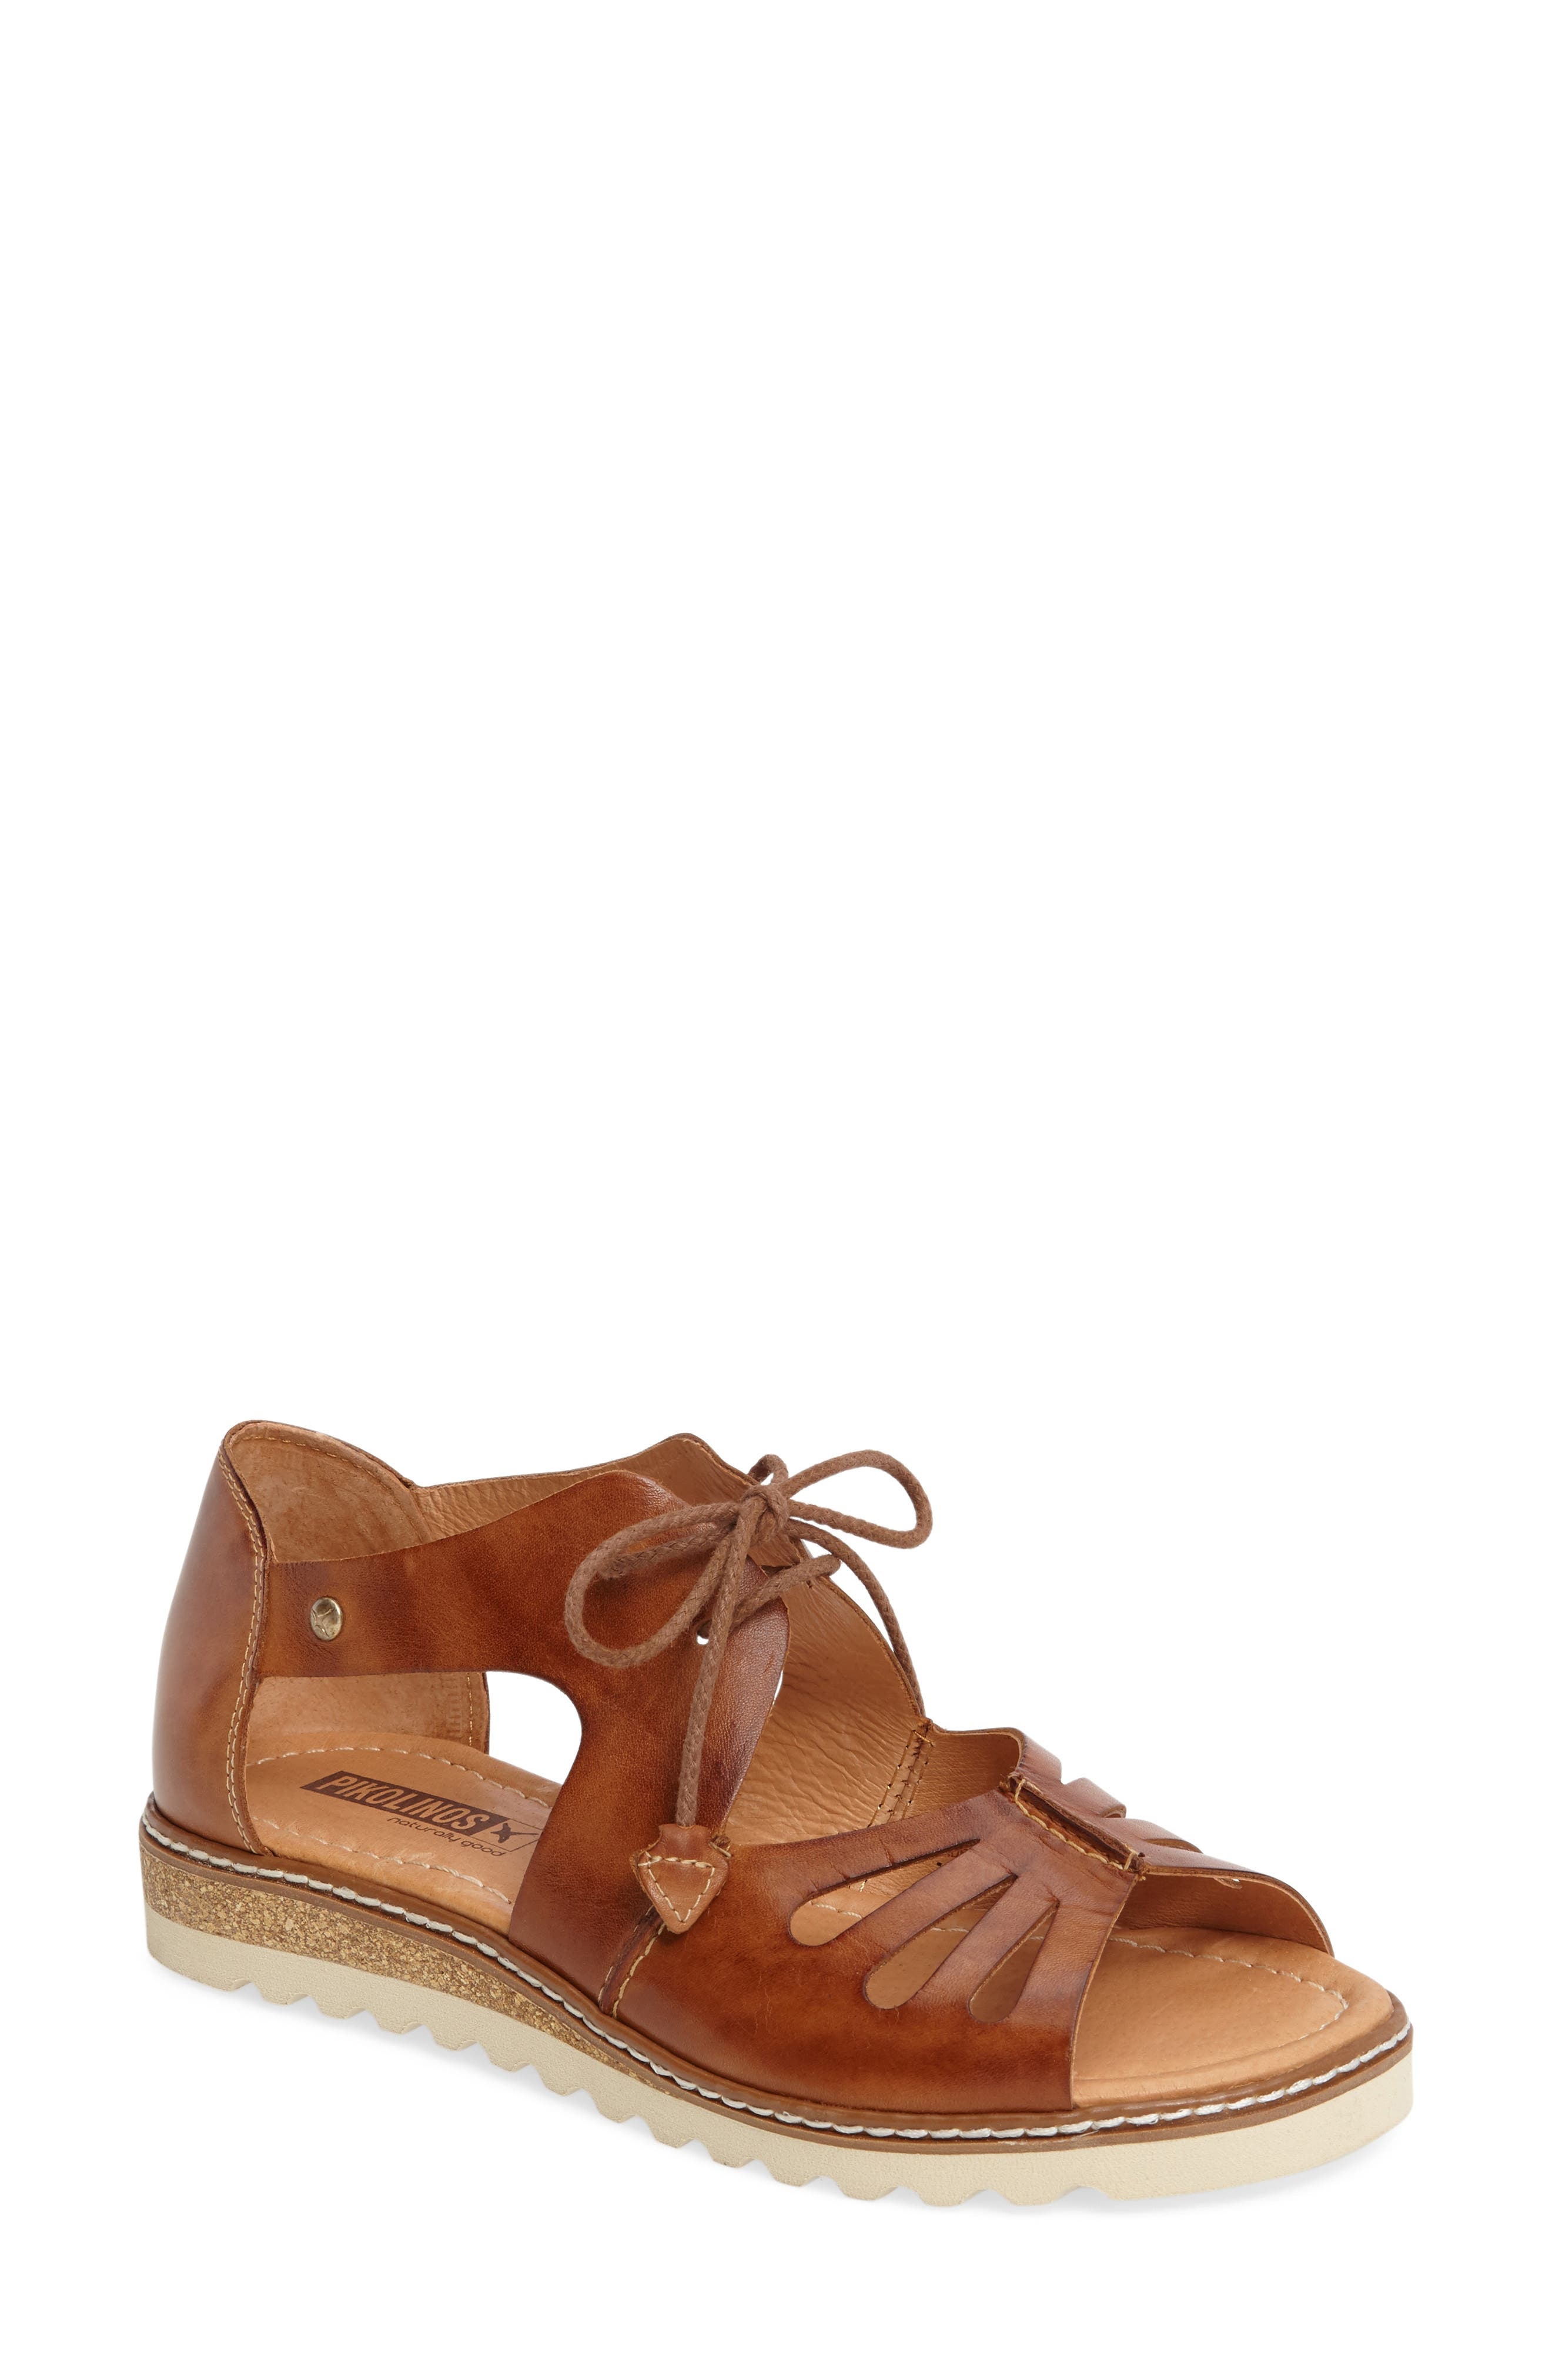 PIKOLINOS Alcudia Lace-Up Sandal, Main, color, BRANDY LEATHER